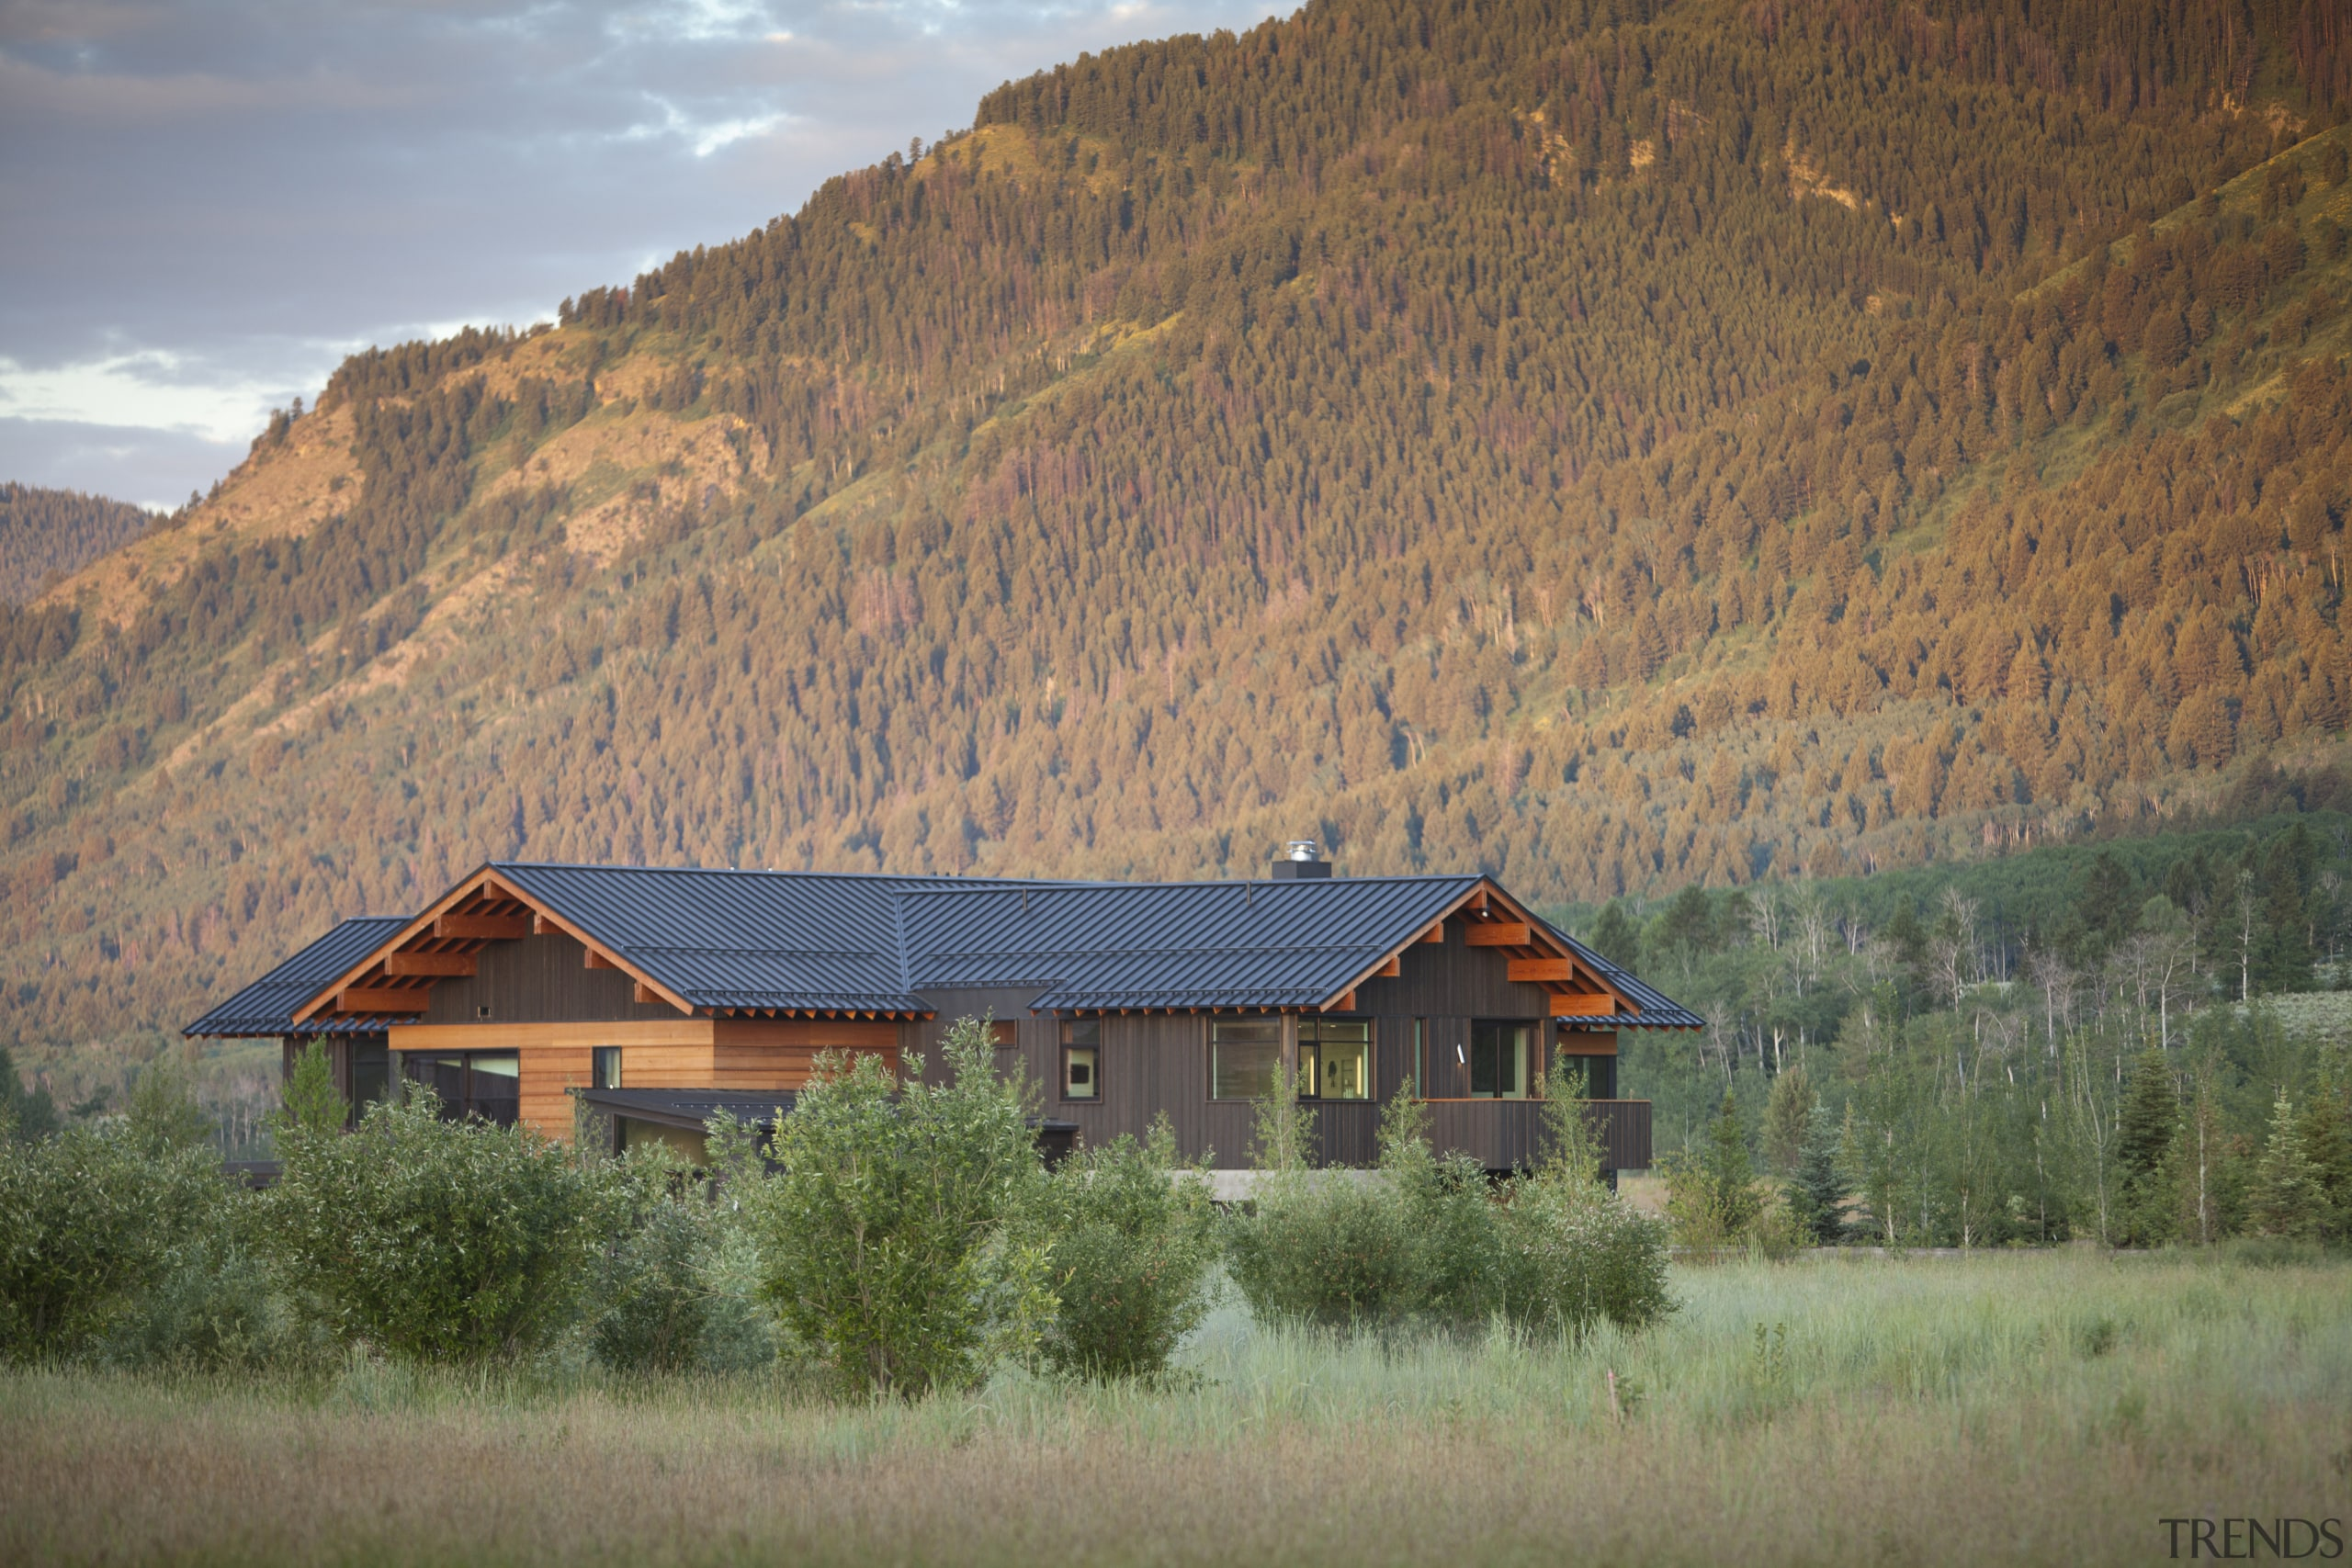 This rustic-looking mountain home by architect Stephen Dynia biome, cloud, cottage, farm, field, grassland, highland, hill, home, house, hut, landscape, log cabin, morning, mountain, mountain range, mountainous landforms, national park, nature, real estate, roof, rural area, sky, sunlight, tree, wilderness, brown